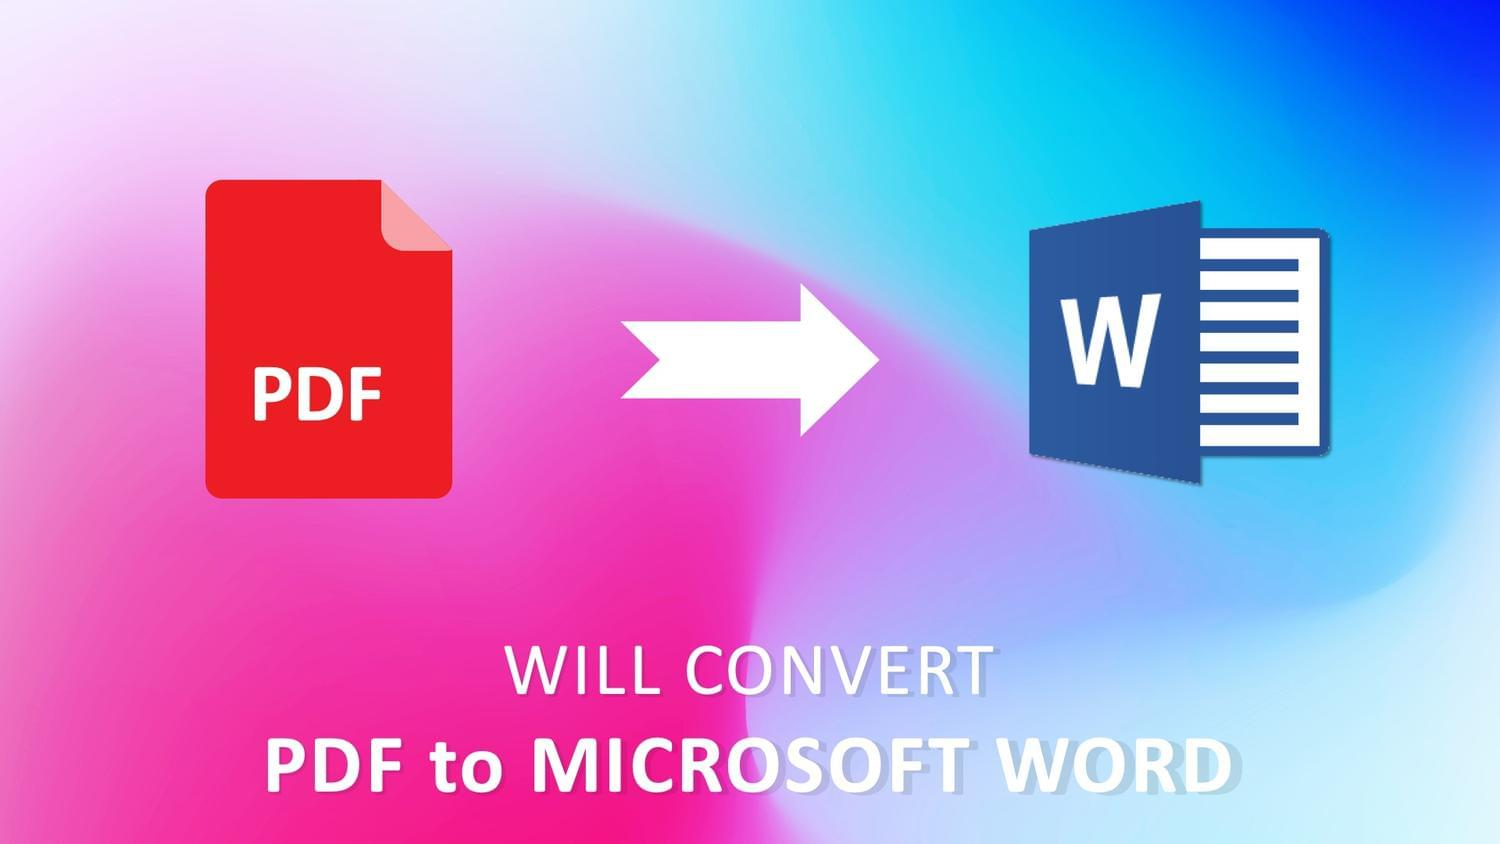 Convert PDF to Microsoft Word by arvaone - 115082